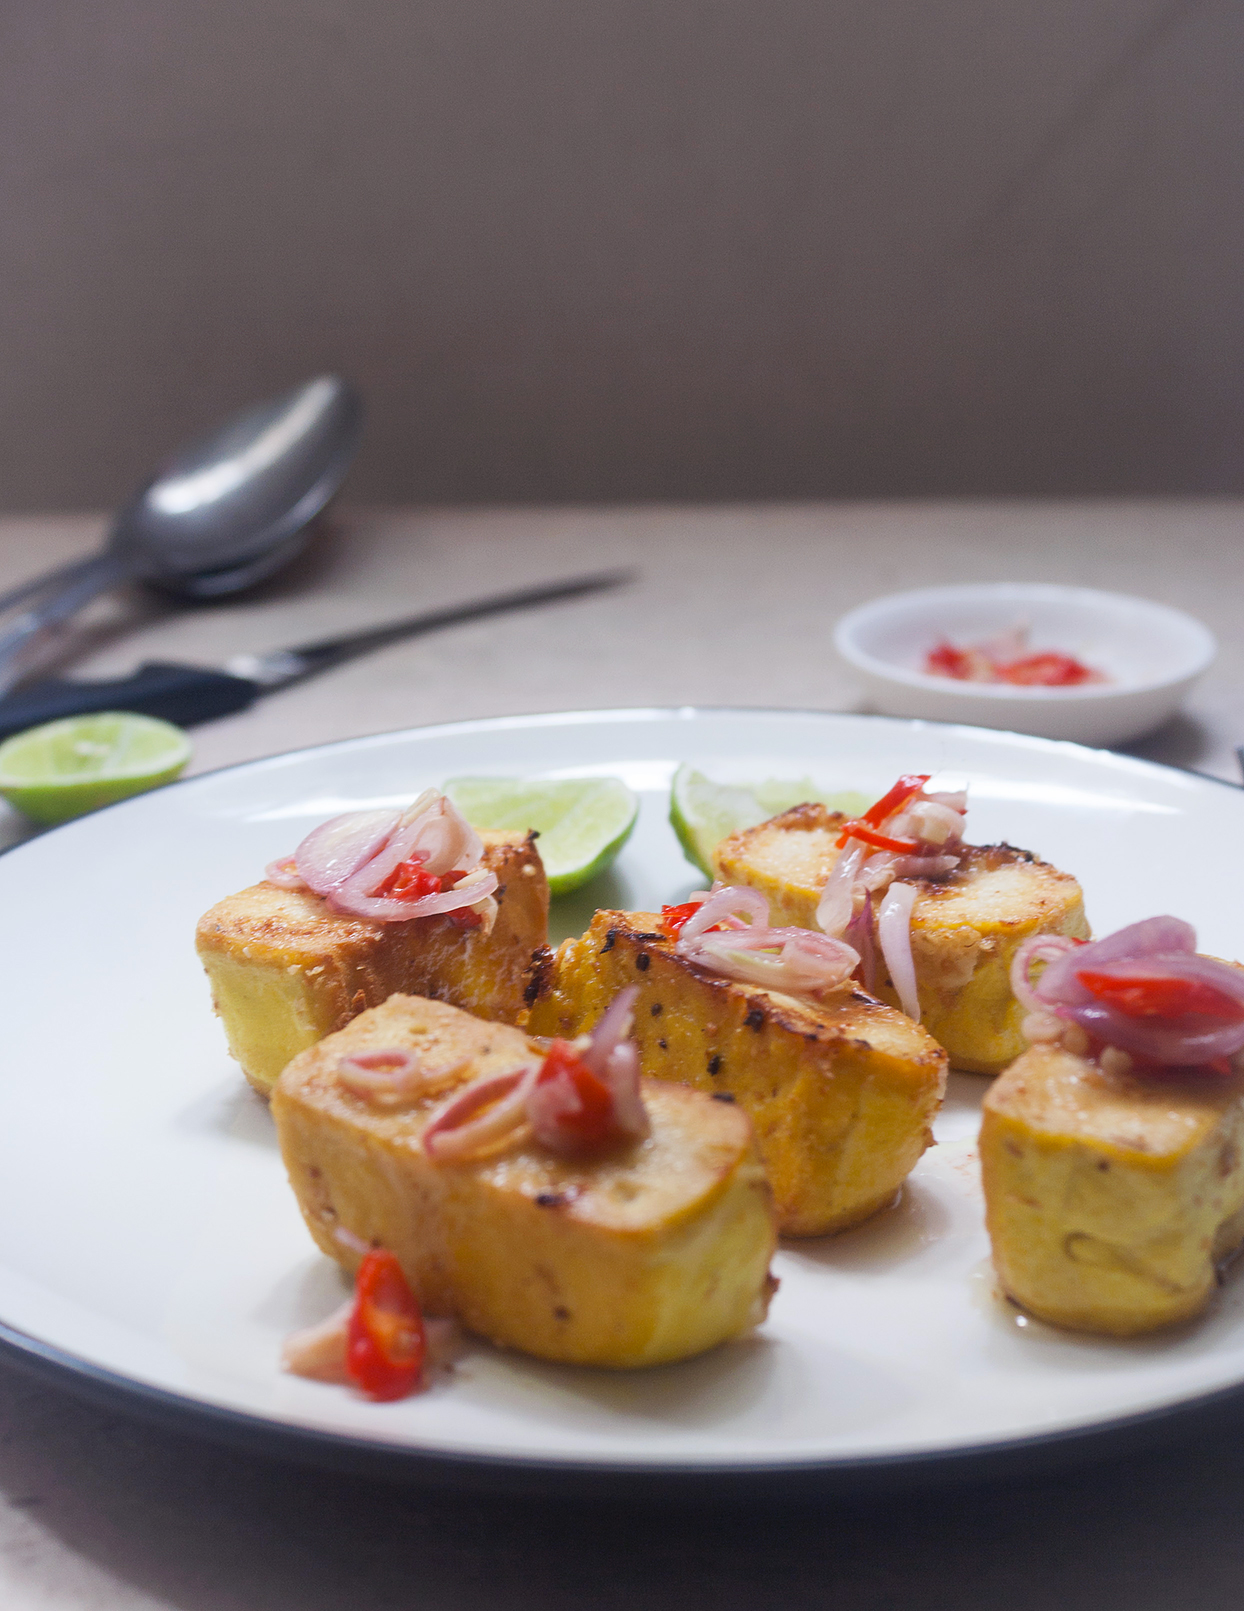 Grilled Tofu with Sambal Matah